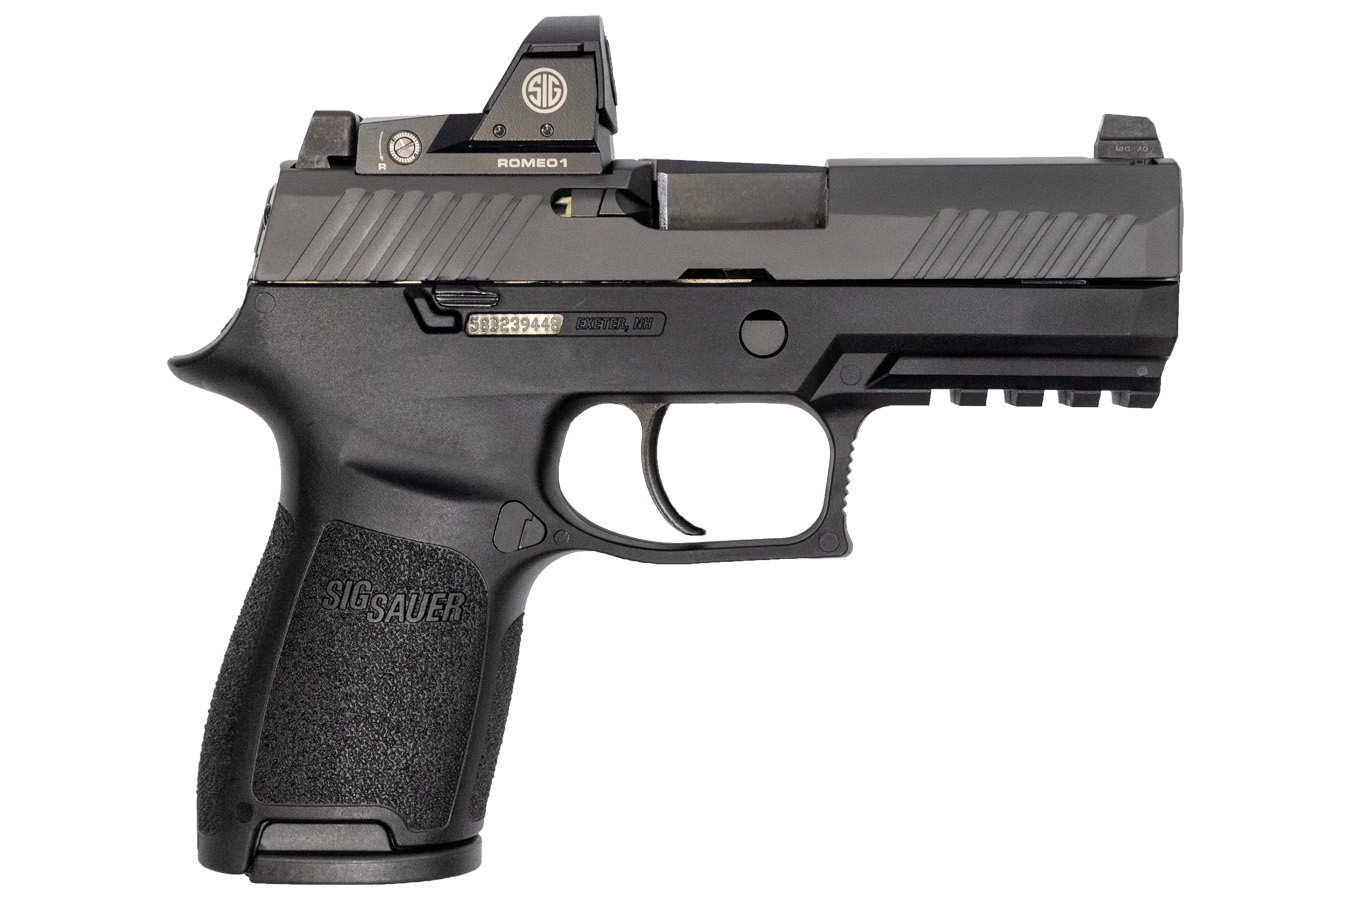 P320 Compact 9mm Striker-Fired Pistol with ROMEO1 Reflex Sight and Night  Sights